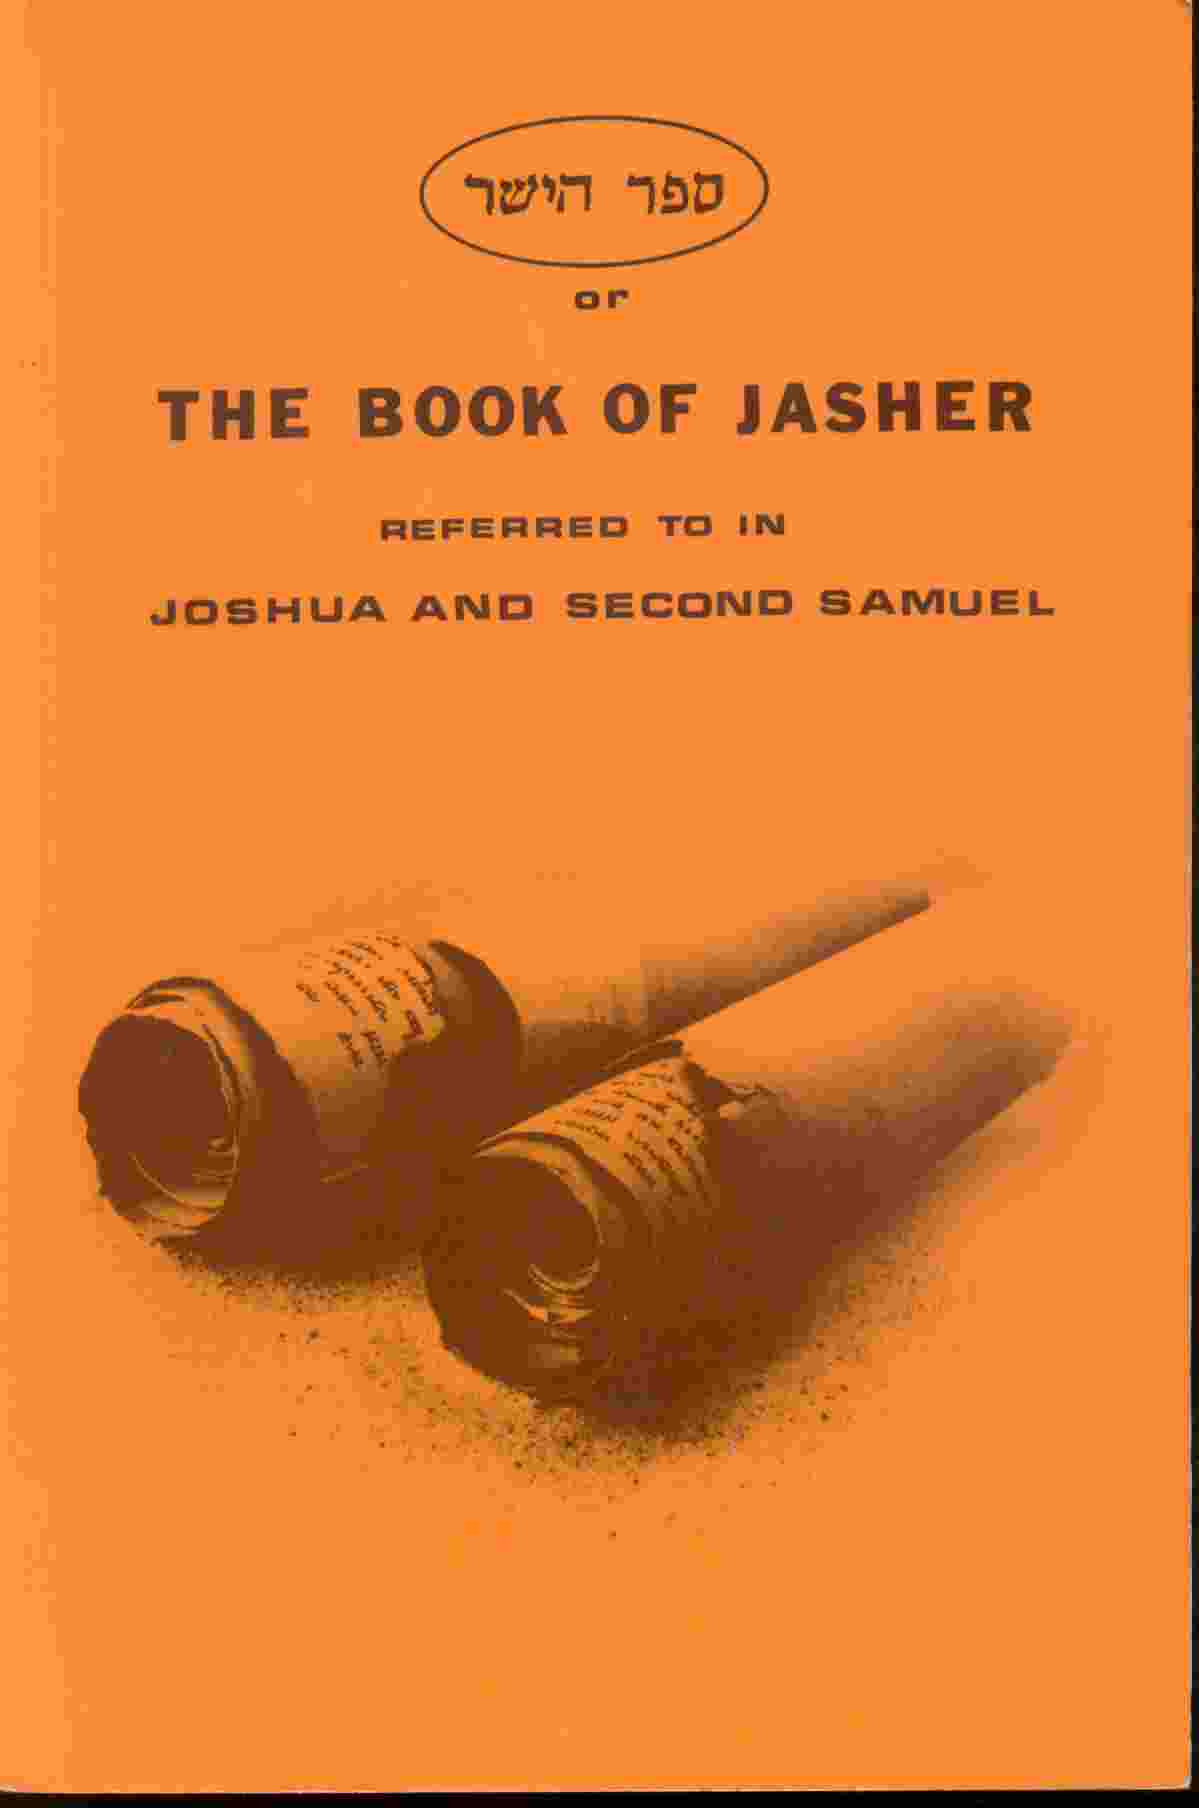 Image for THE BOOK OF JASHER - 1887 -  Referred to in Joshua and Second Samuel.